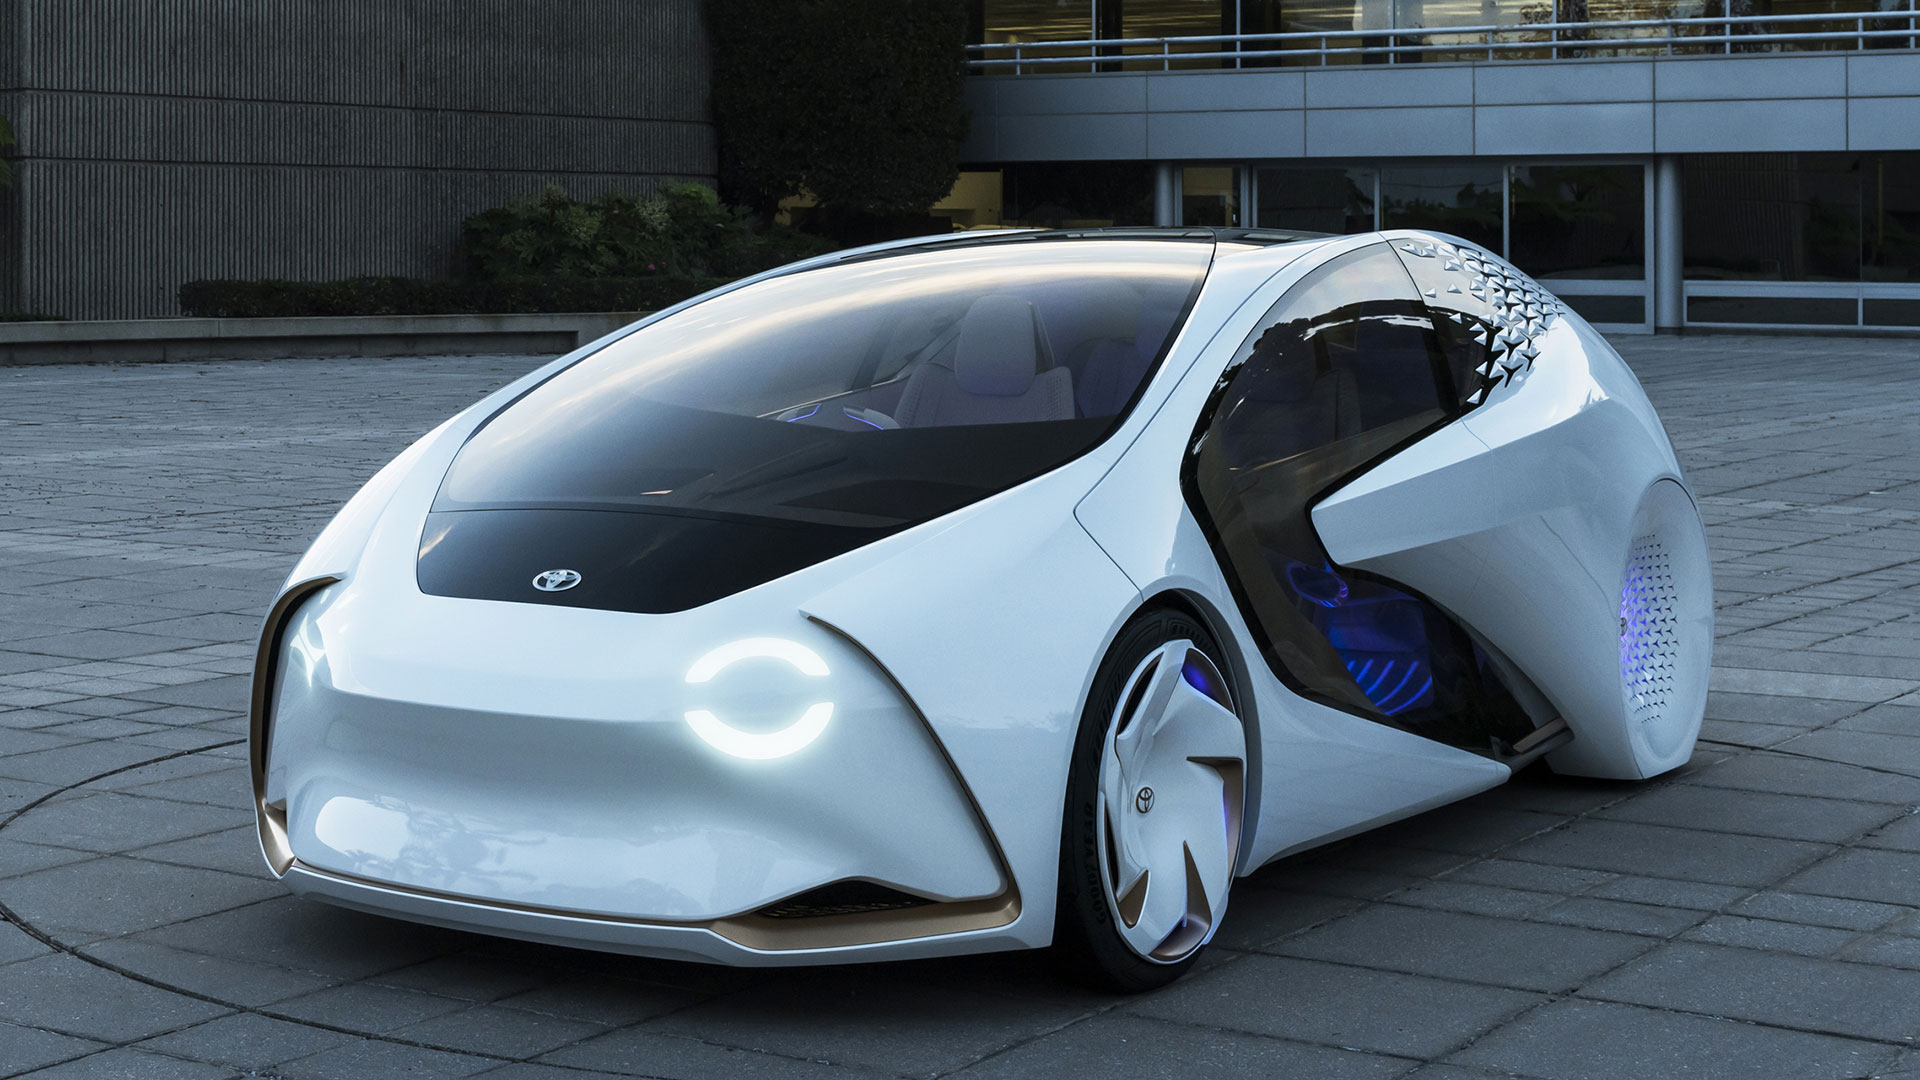 Original Toyota39s CES Concept Car Is A Futuristic Pod That Wants To